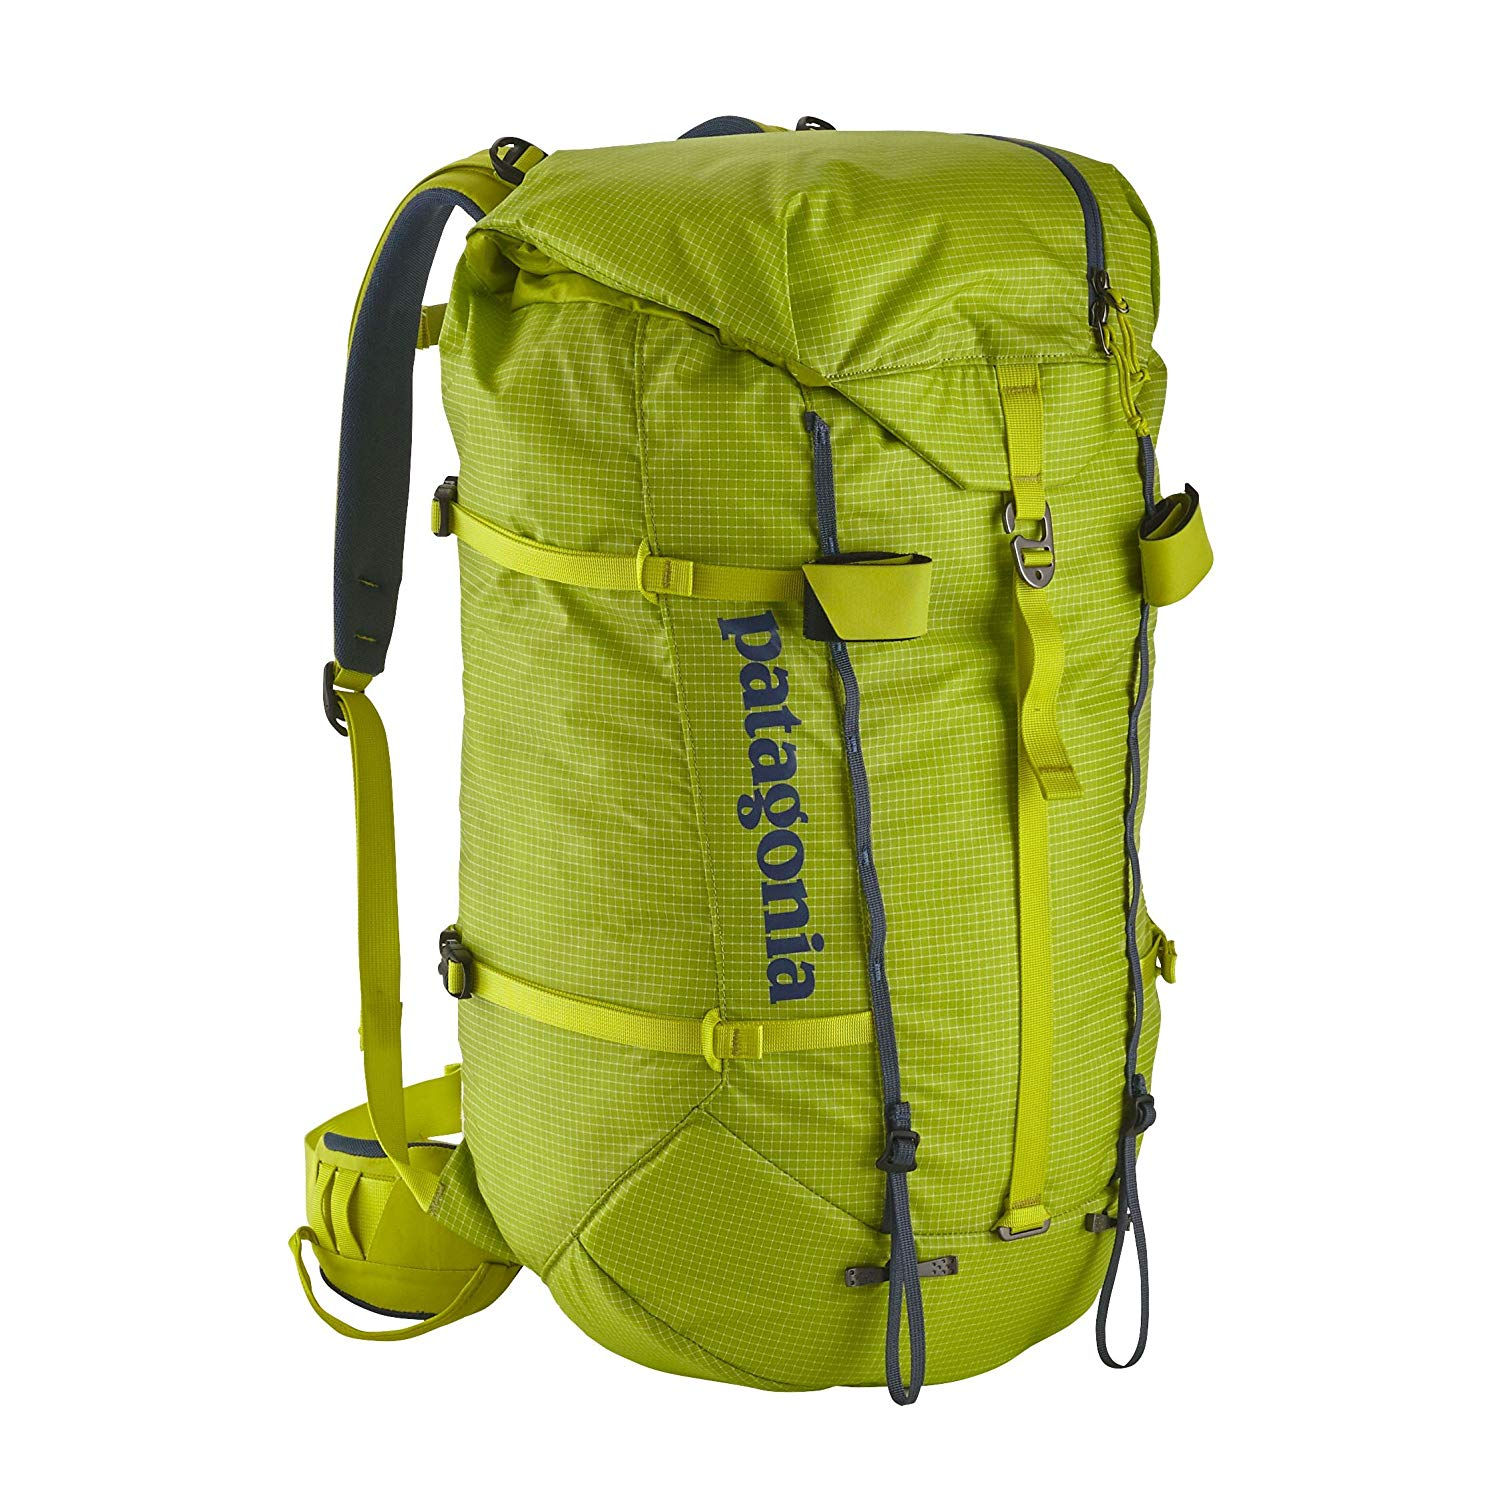 Patagonia Ascensionist 40 test